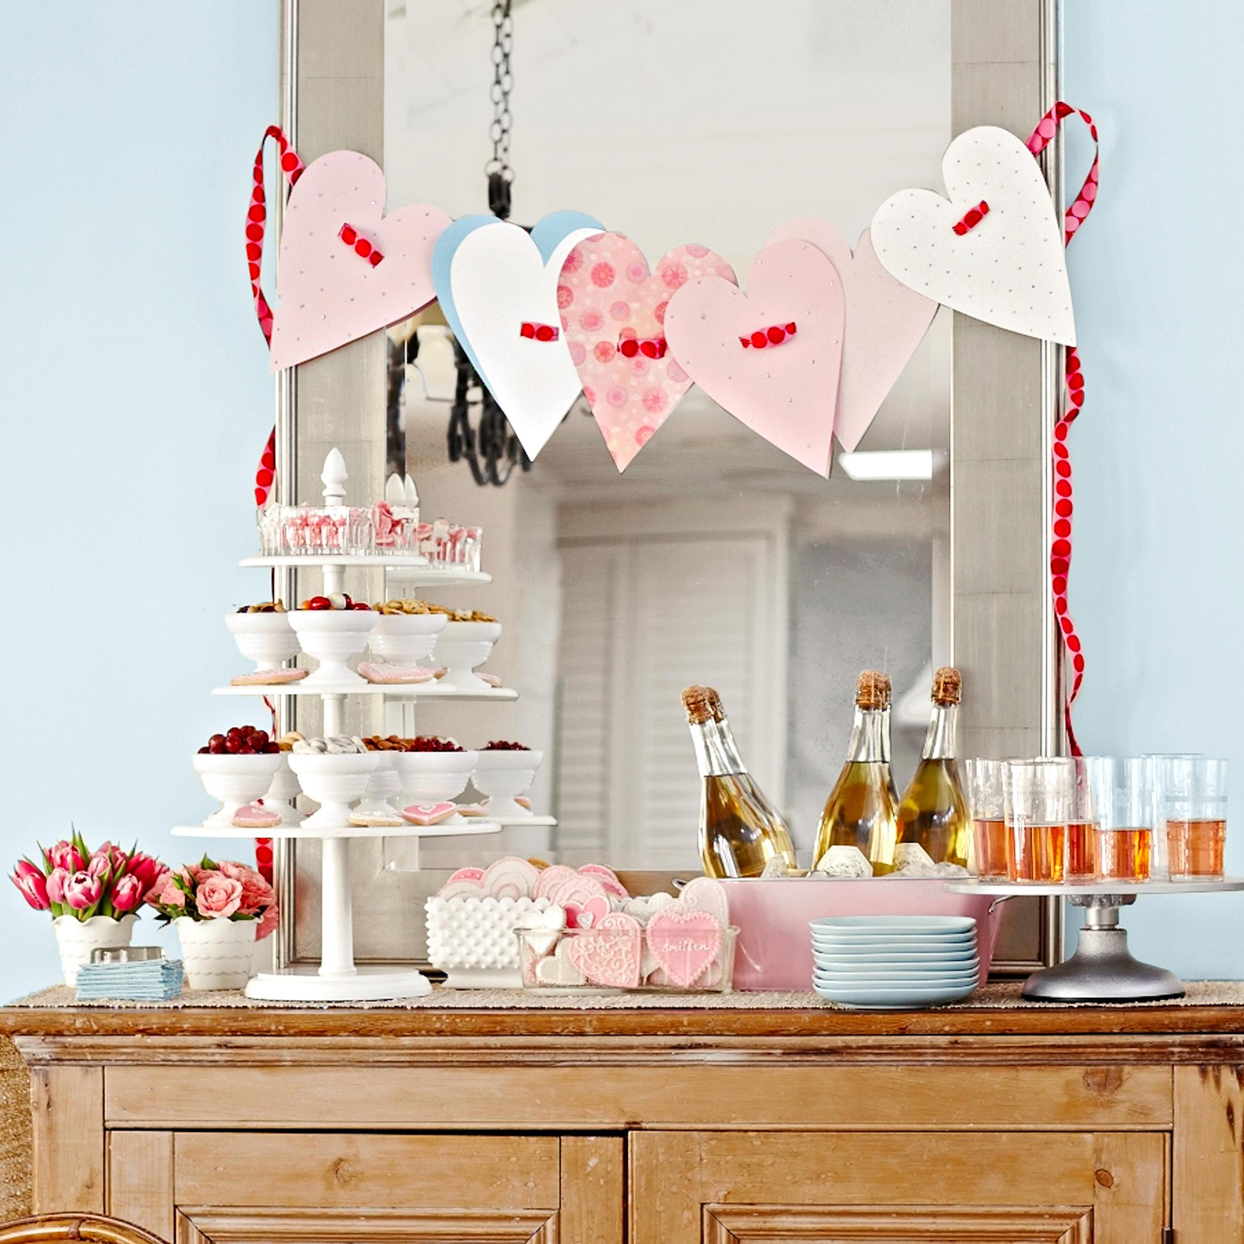 Paper Heart Garland over mirror